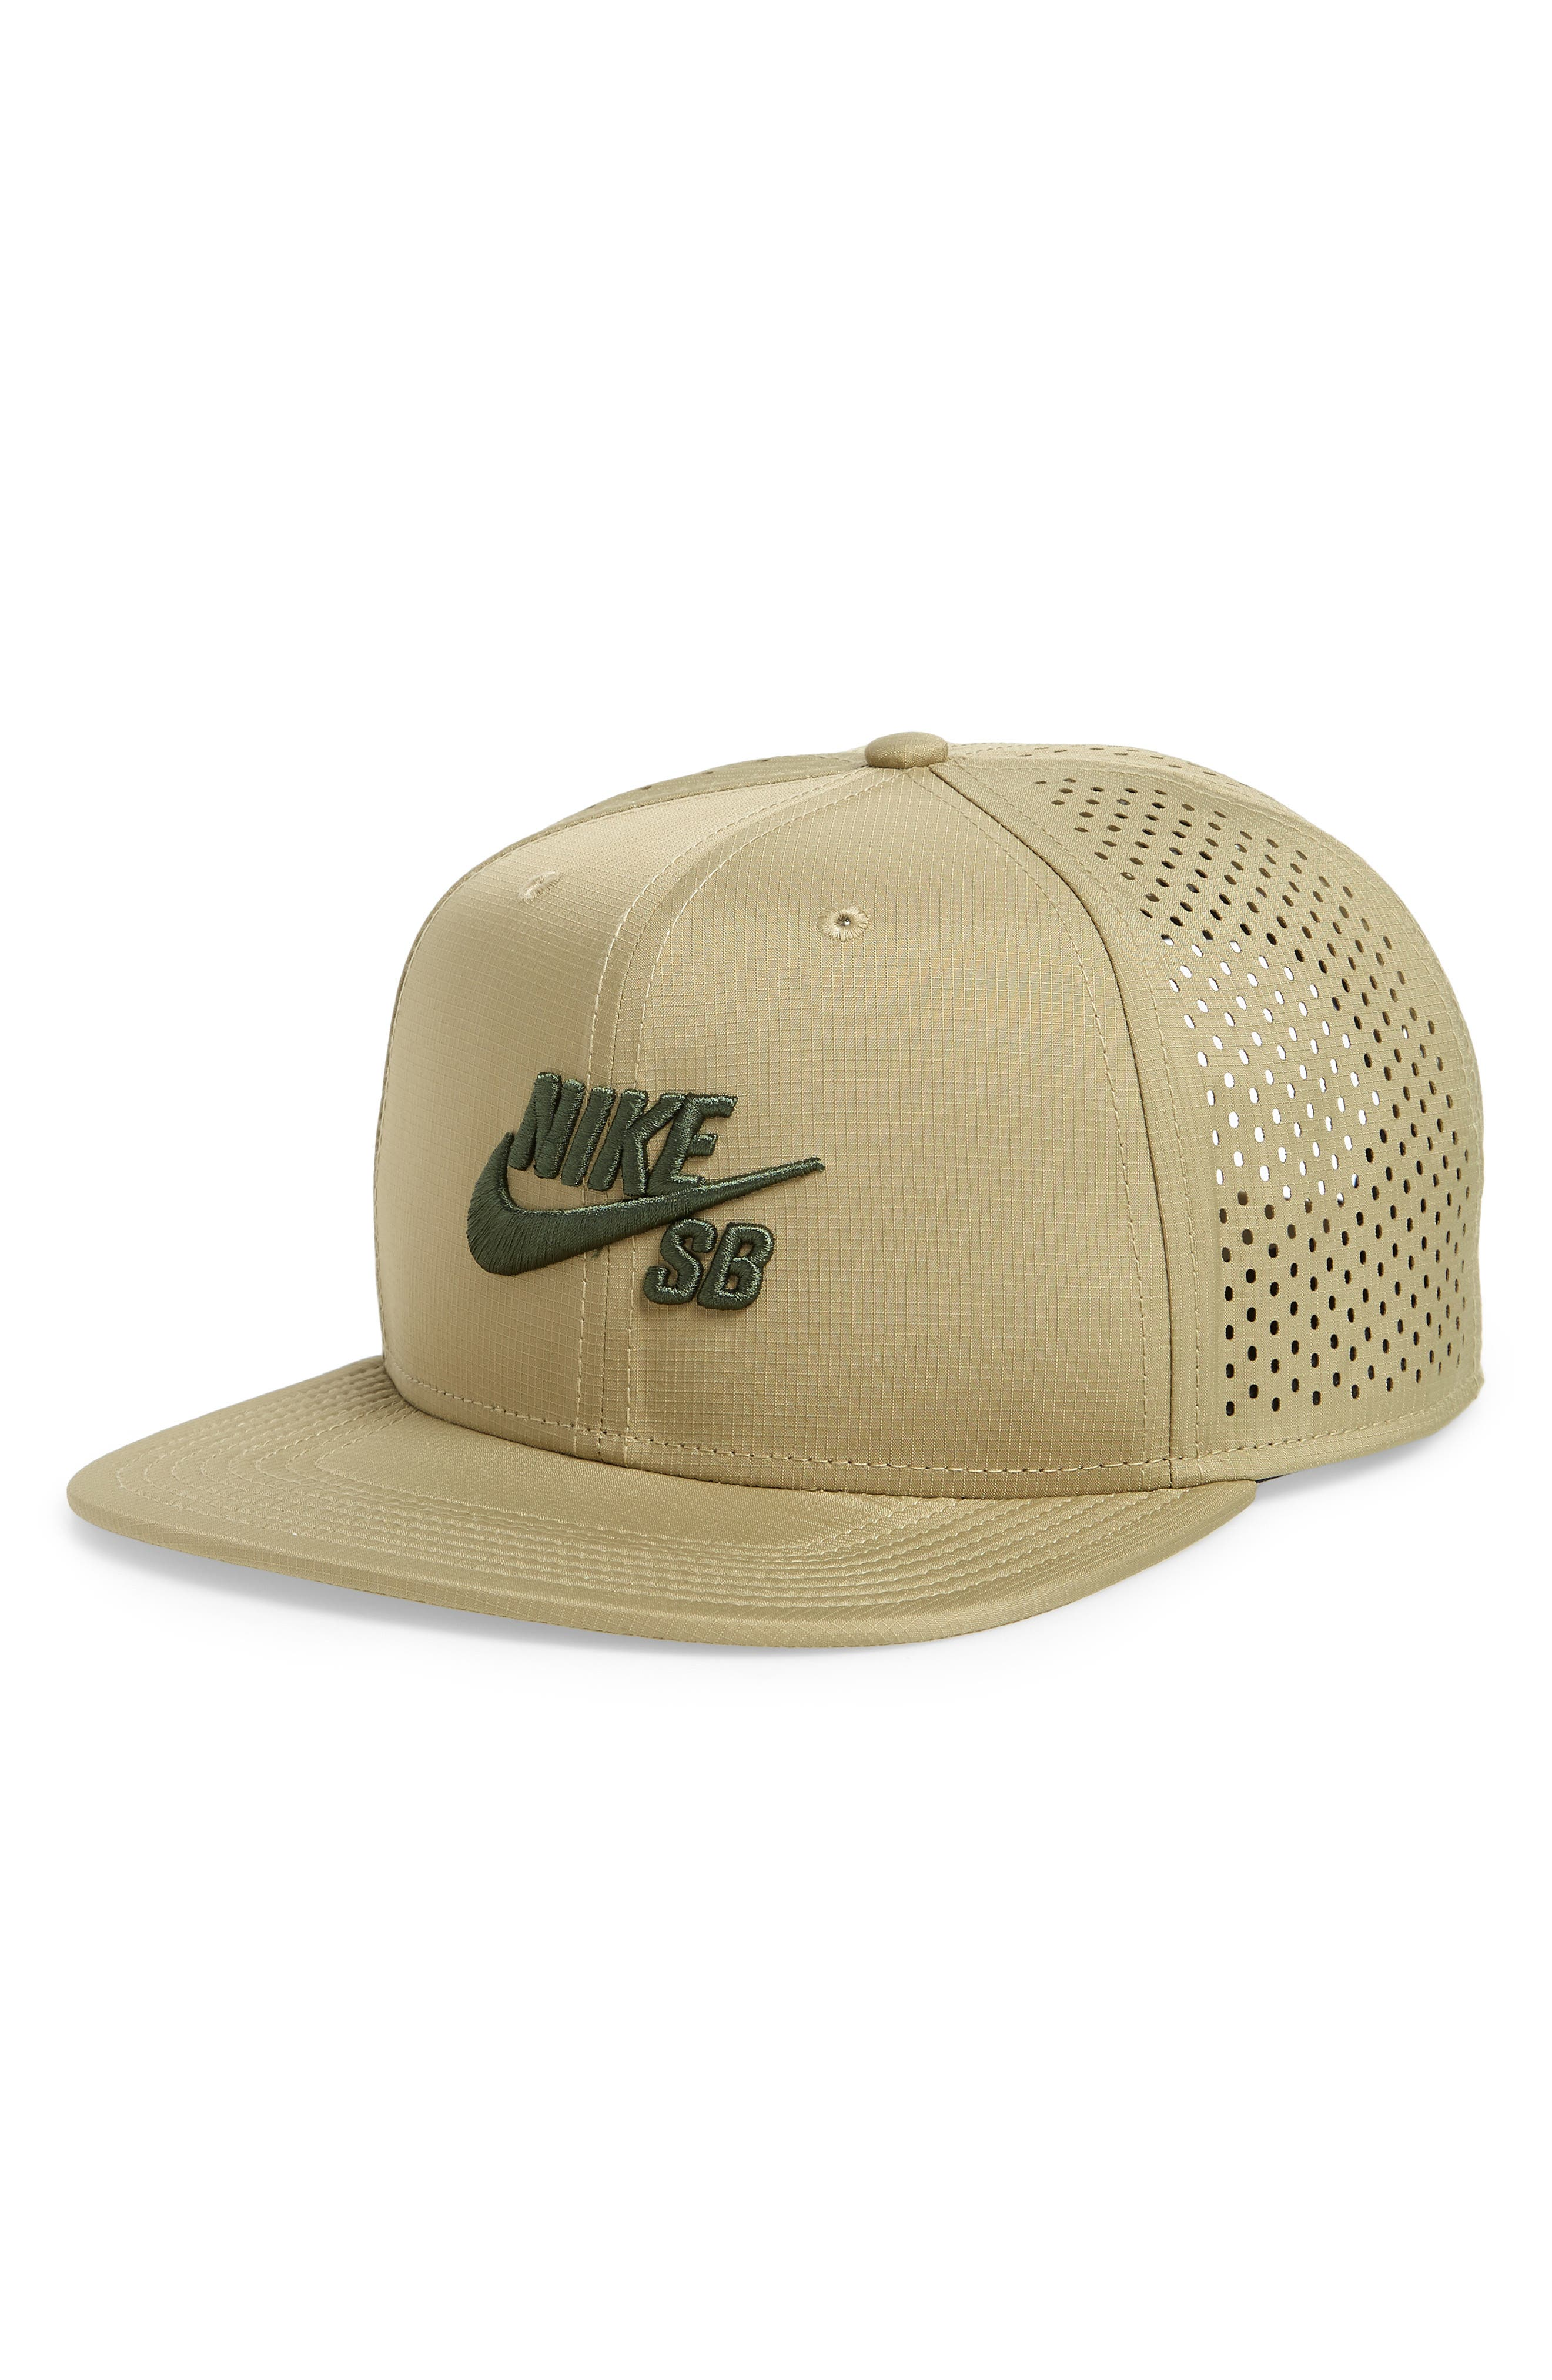 Performance Trucker Hat,                             Main thumbnail 1, color,                             Neutral Olive/ Olive/ Sequoia